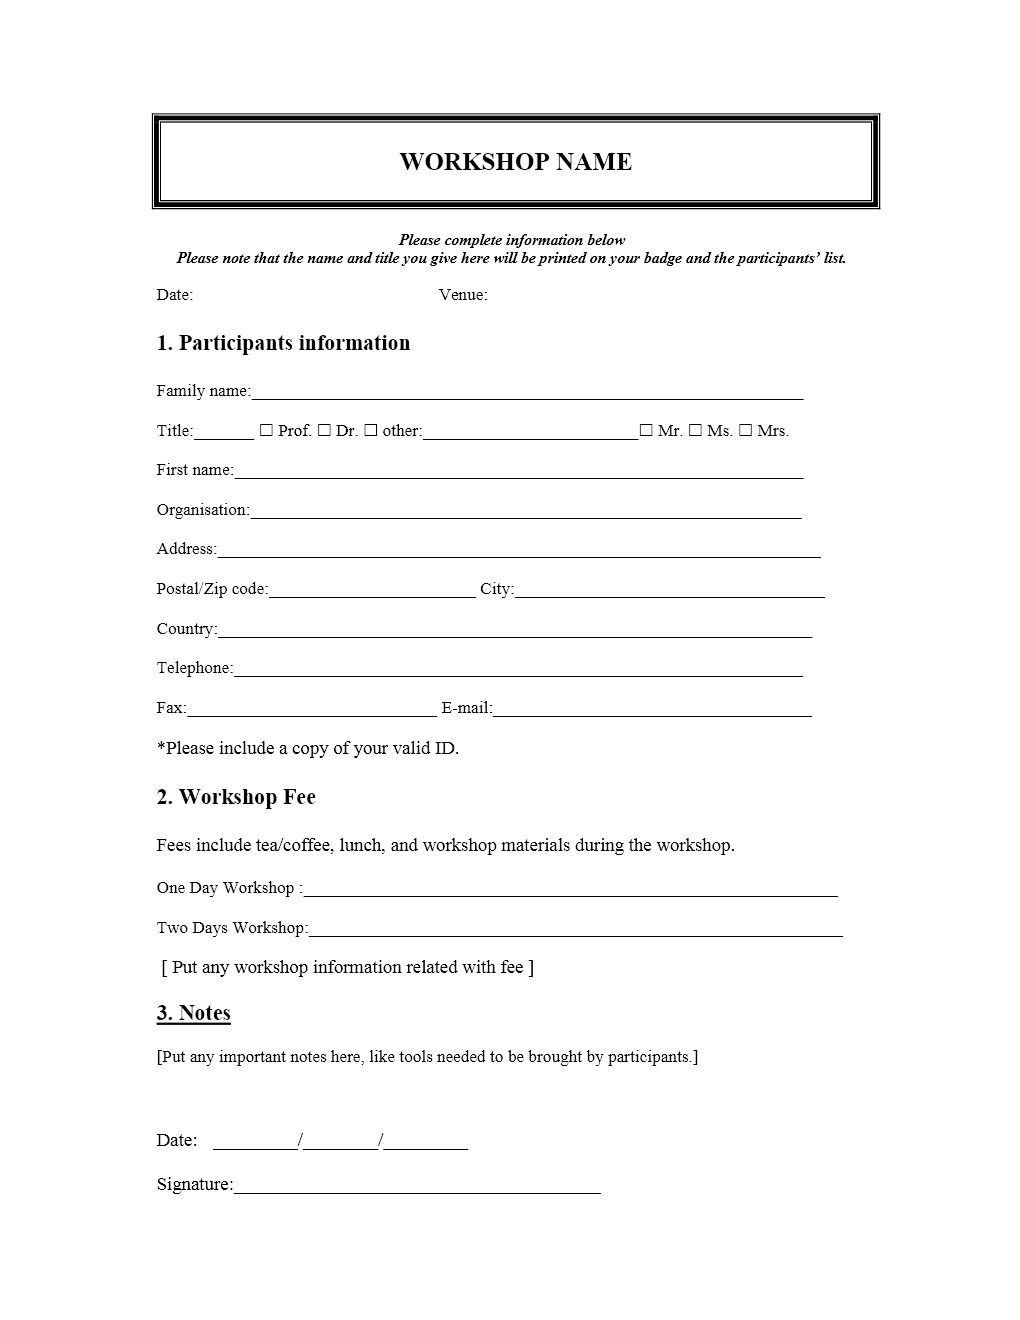 workshop registration form wordtemplates net workshop registration form